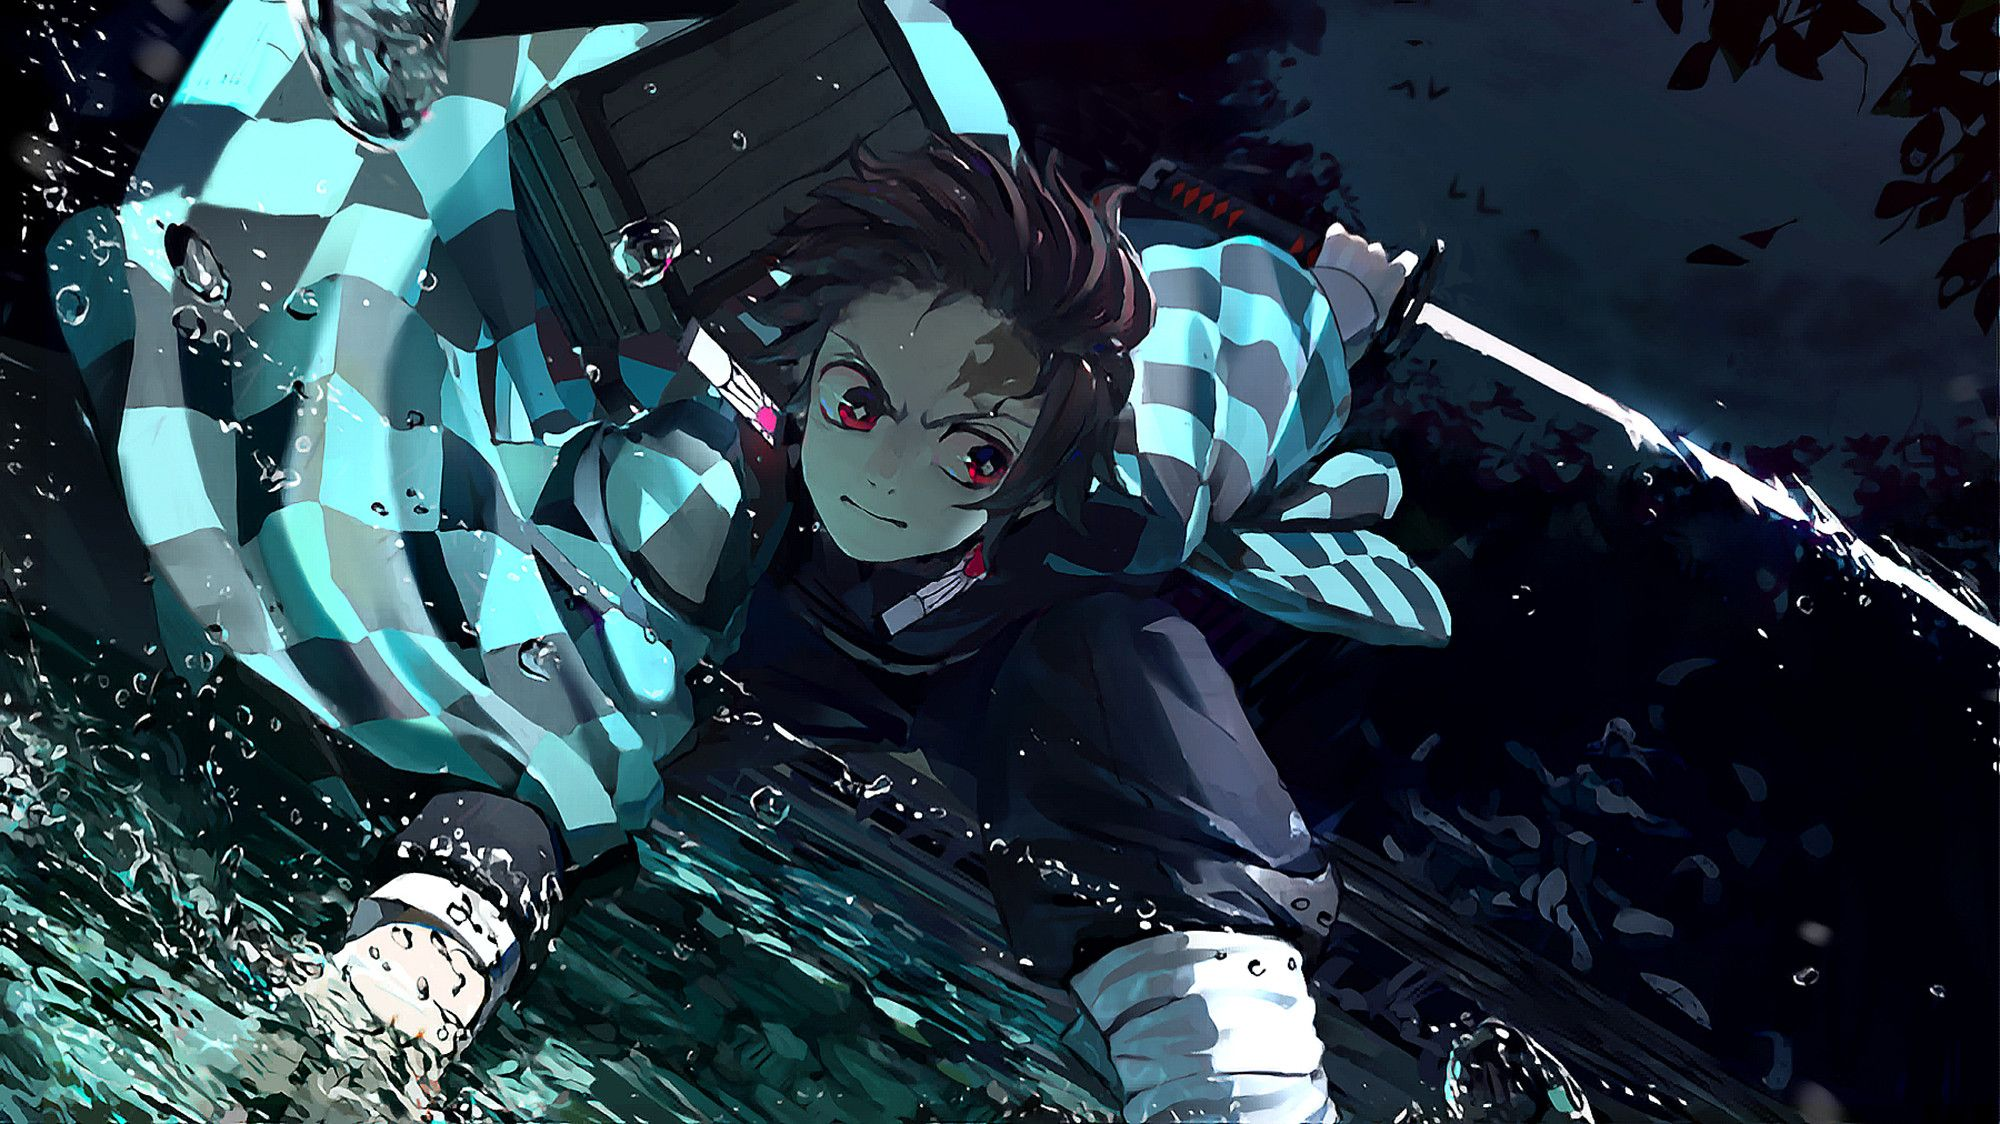 Awesome Demon Slayer Tanjirou Kamado Wallpaper Hd Anime 4k ...